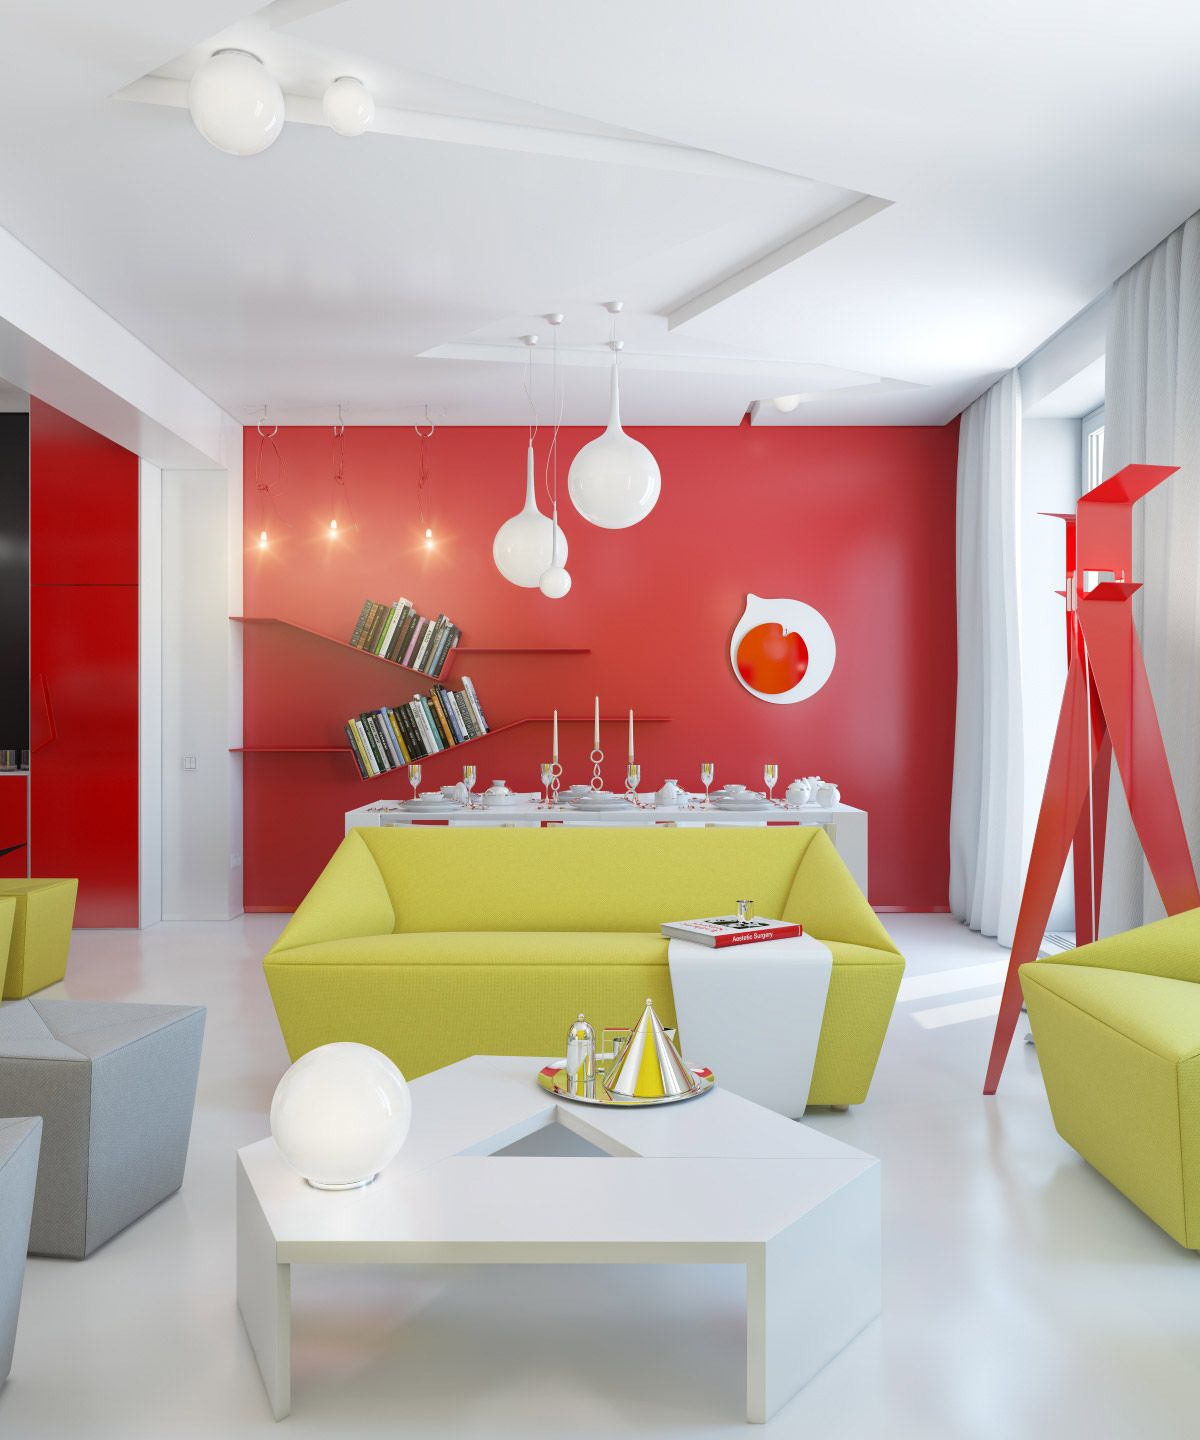 The Idea Of Improving Your Home Interior